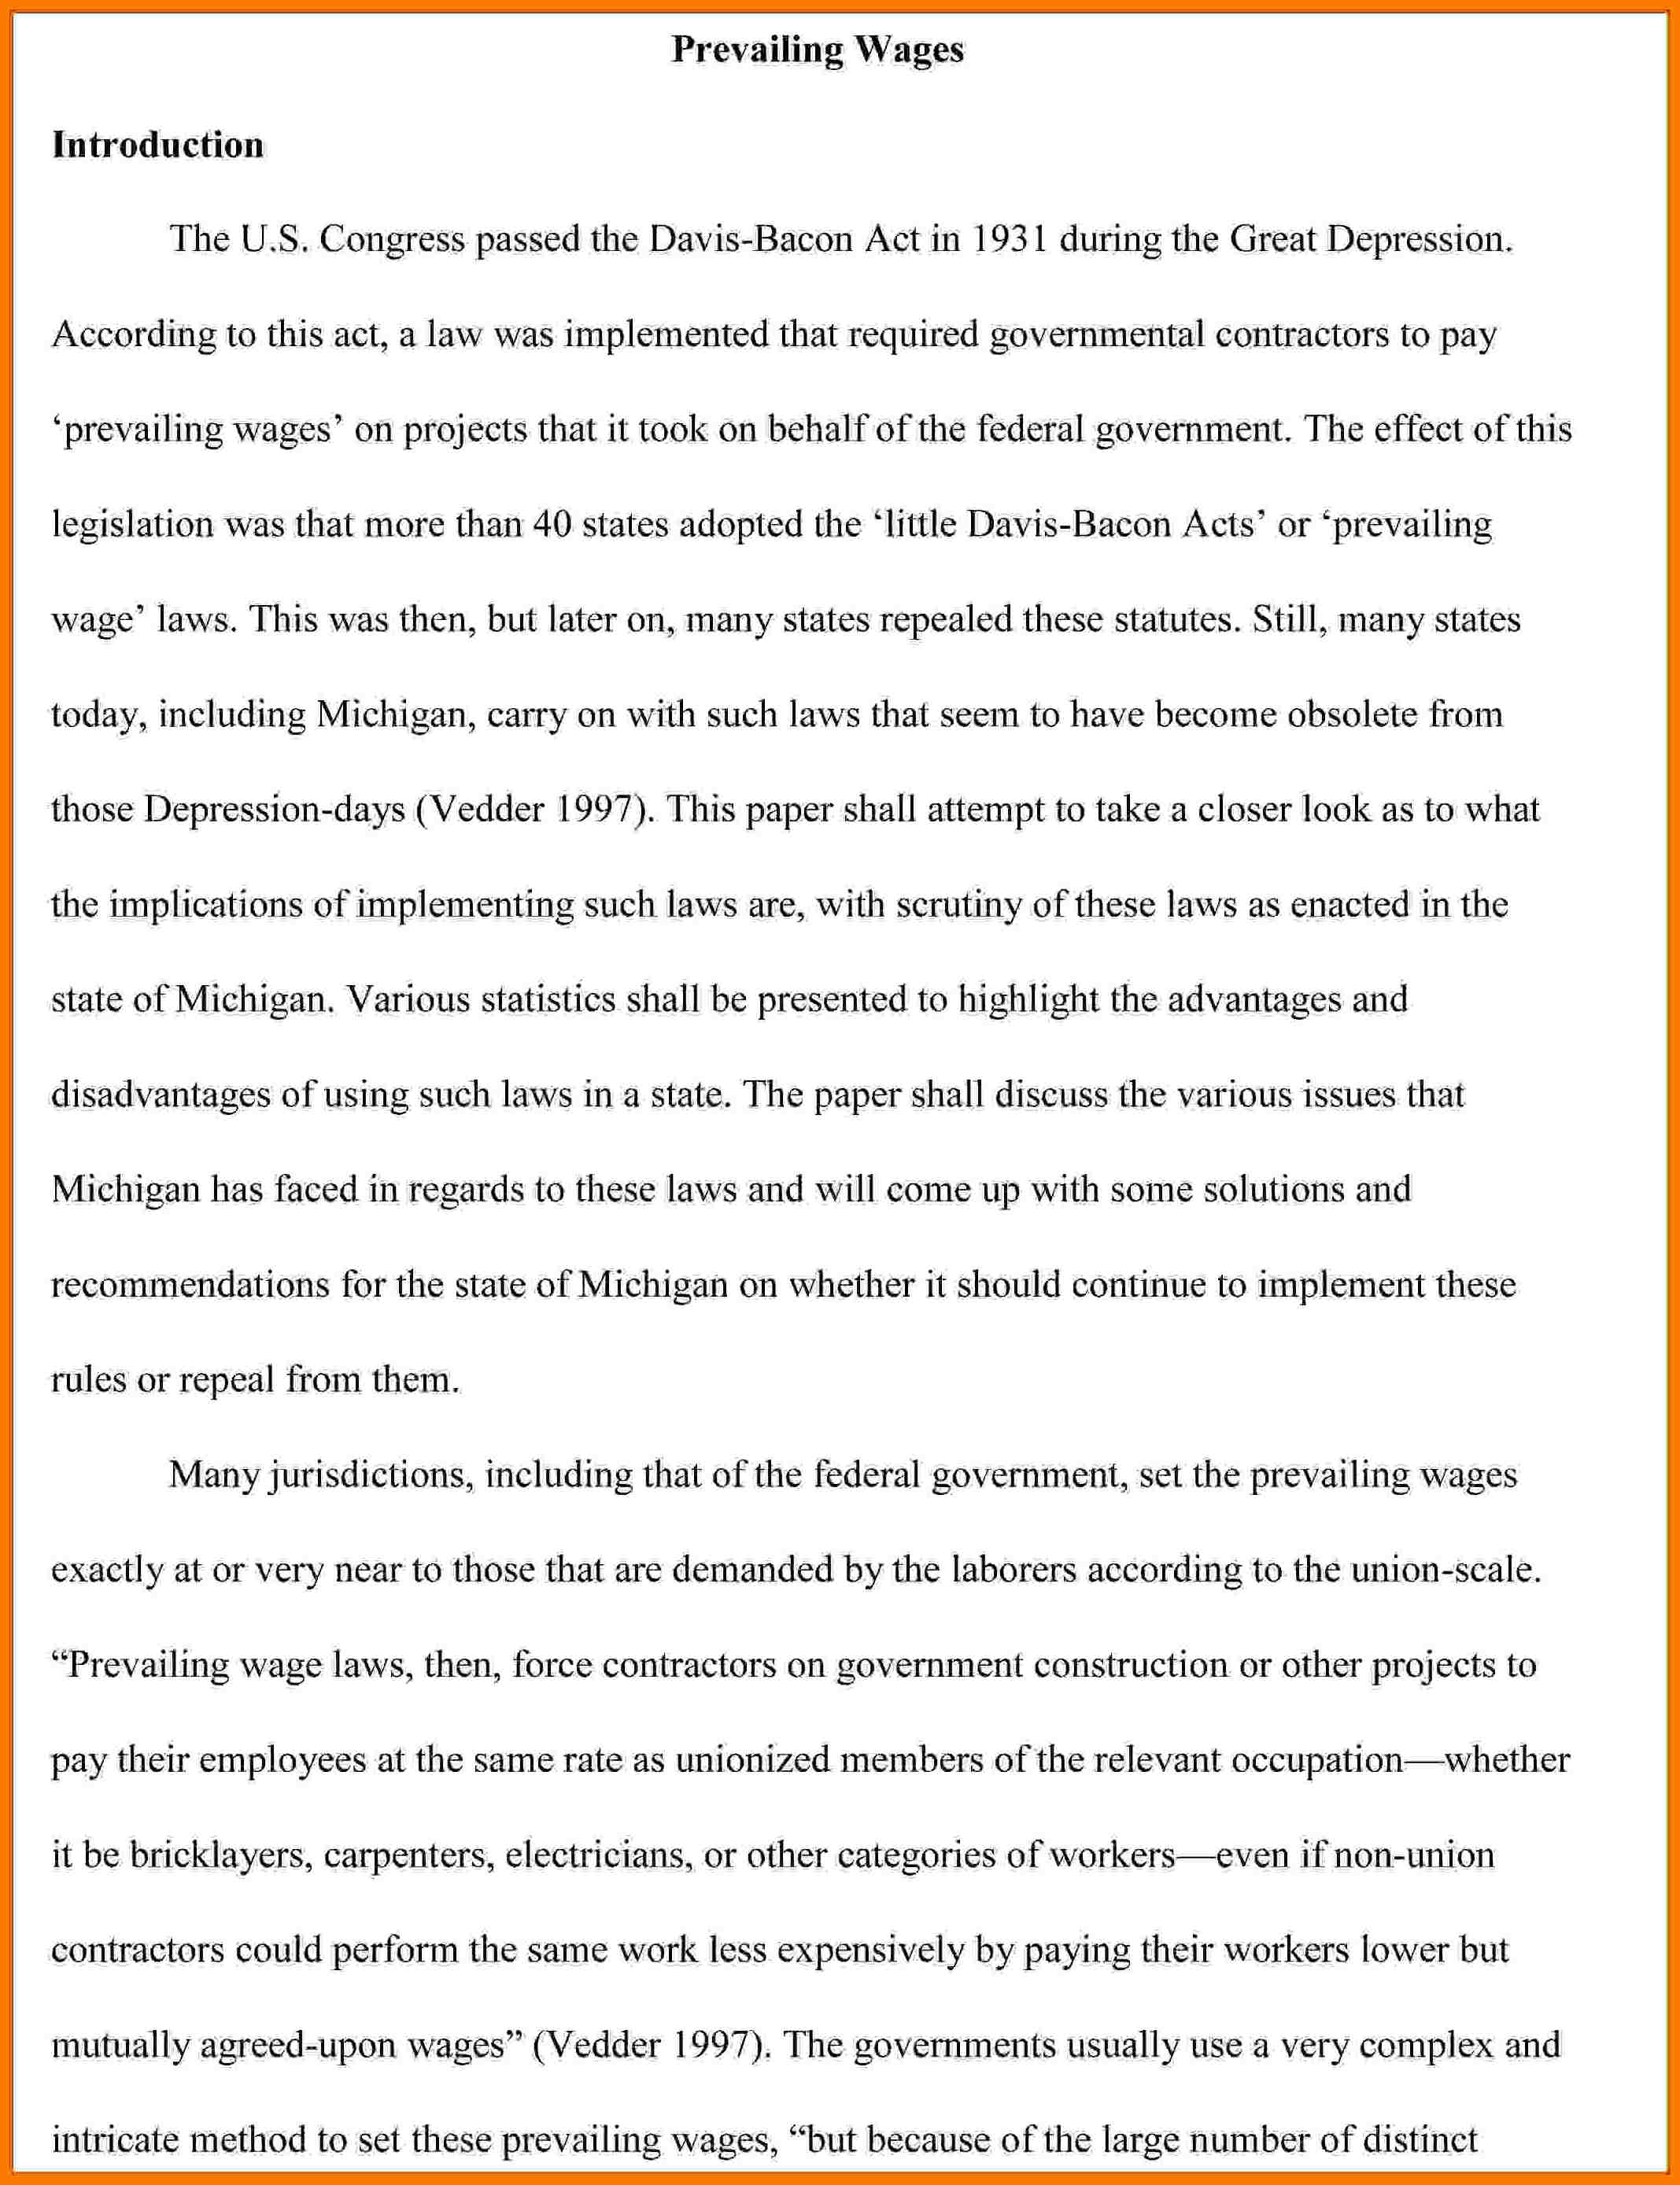 002 Example Of Research Paper Introduction Collection Solutions Apa Wonderful A About Bullying Psychology Scientific Full